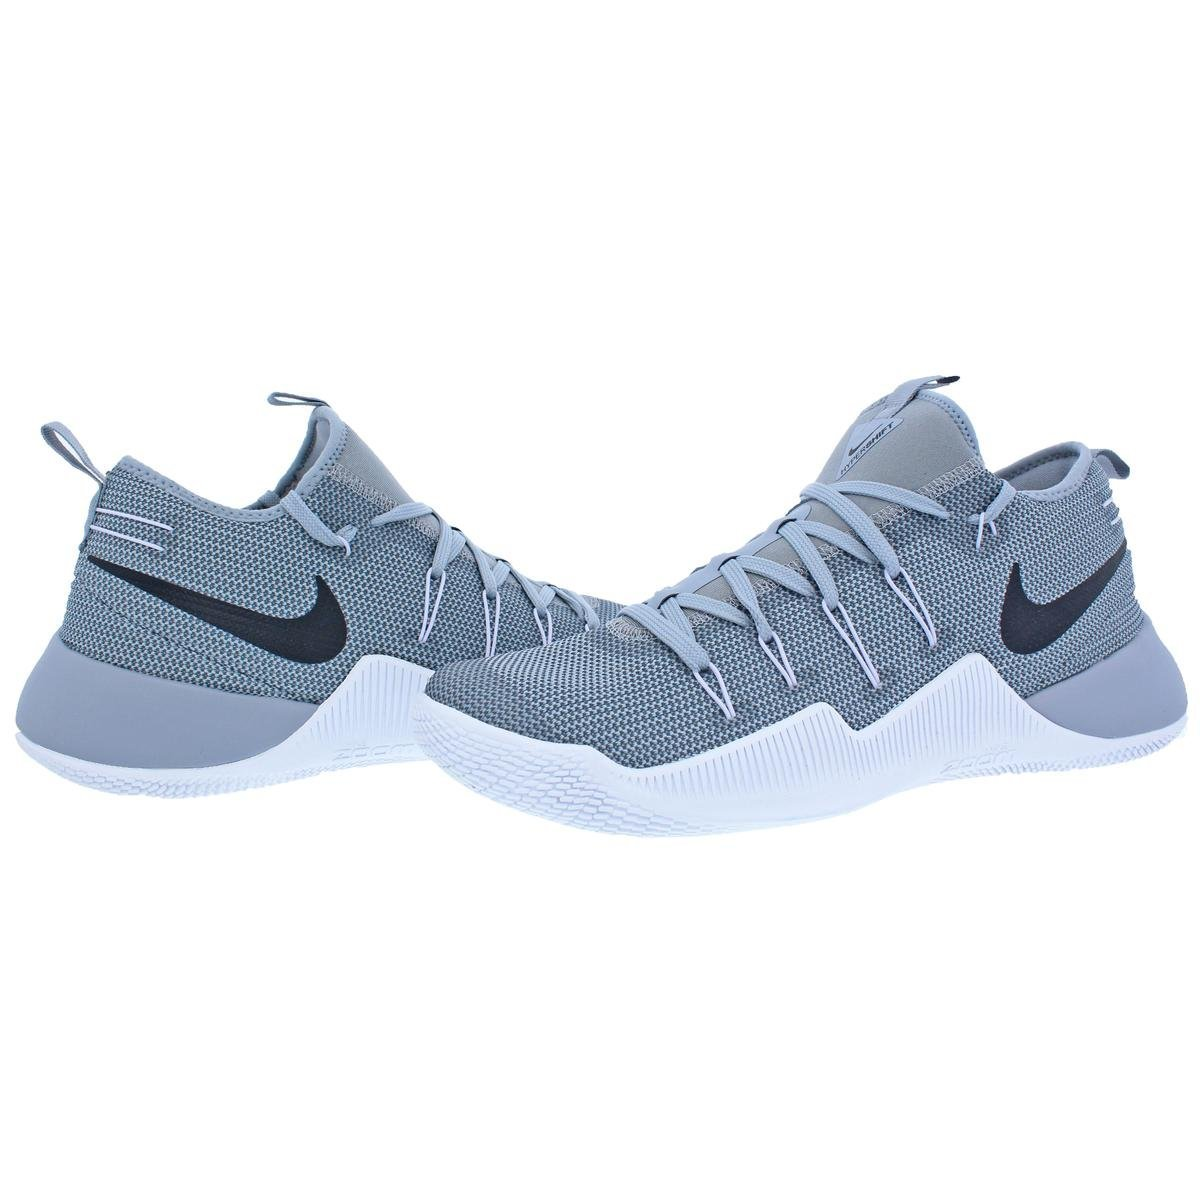 newest 878b6 d18ee Nike Hypershift TB Promo Men s Mesh Lace-up Basketball Shoes Grey Size  12.5  Amazon.co.uk  Shoes   Bags